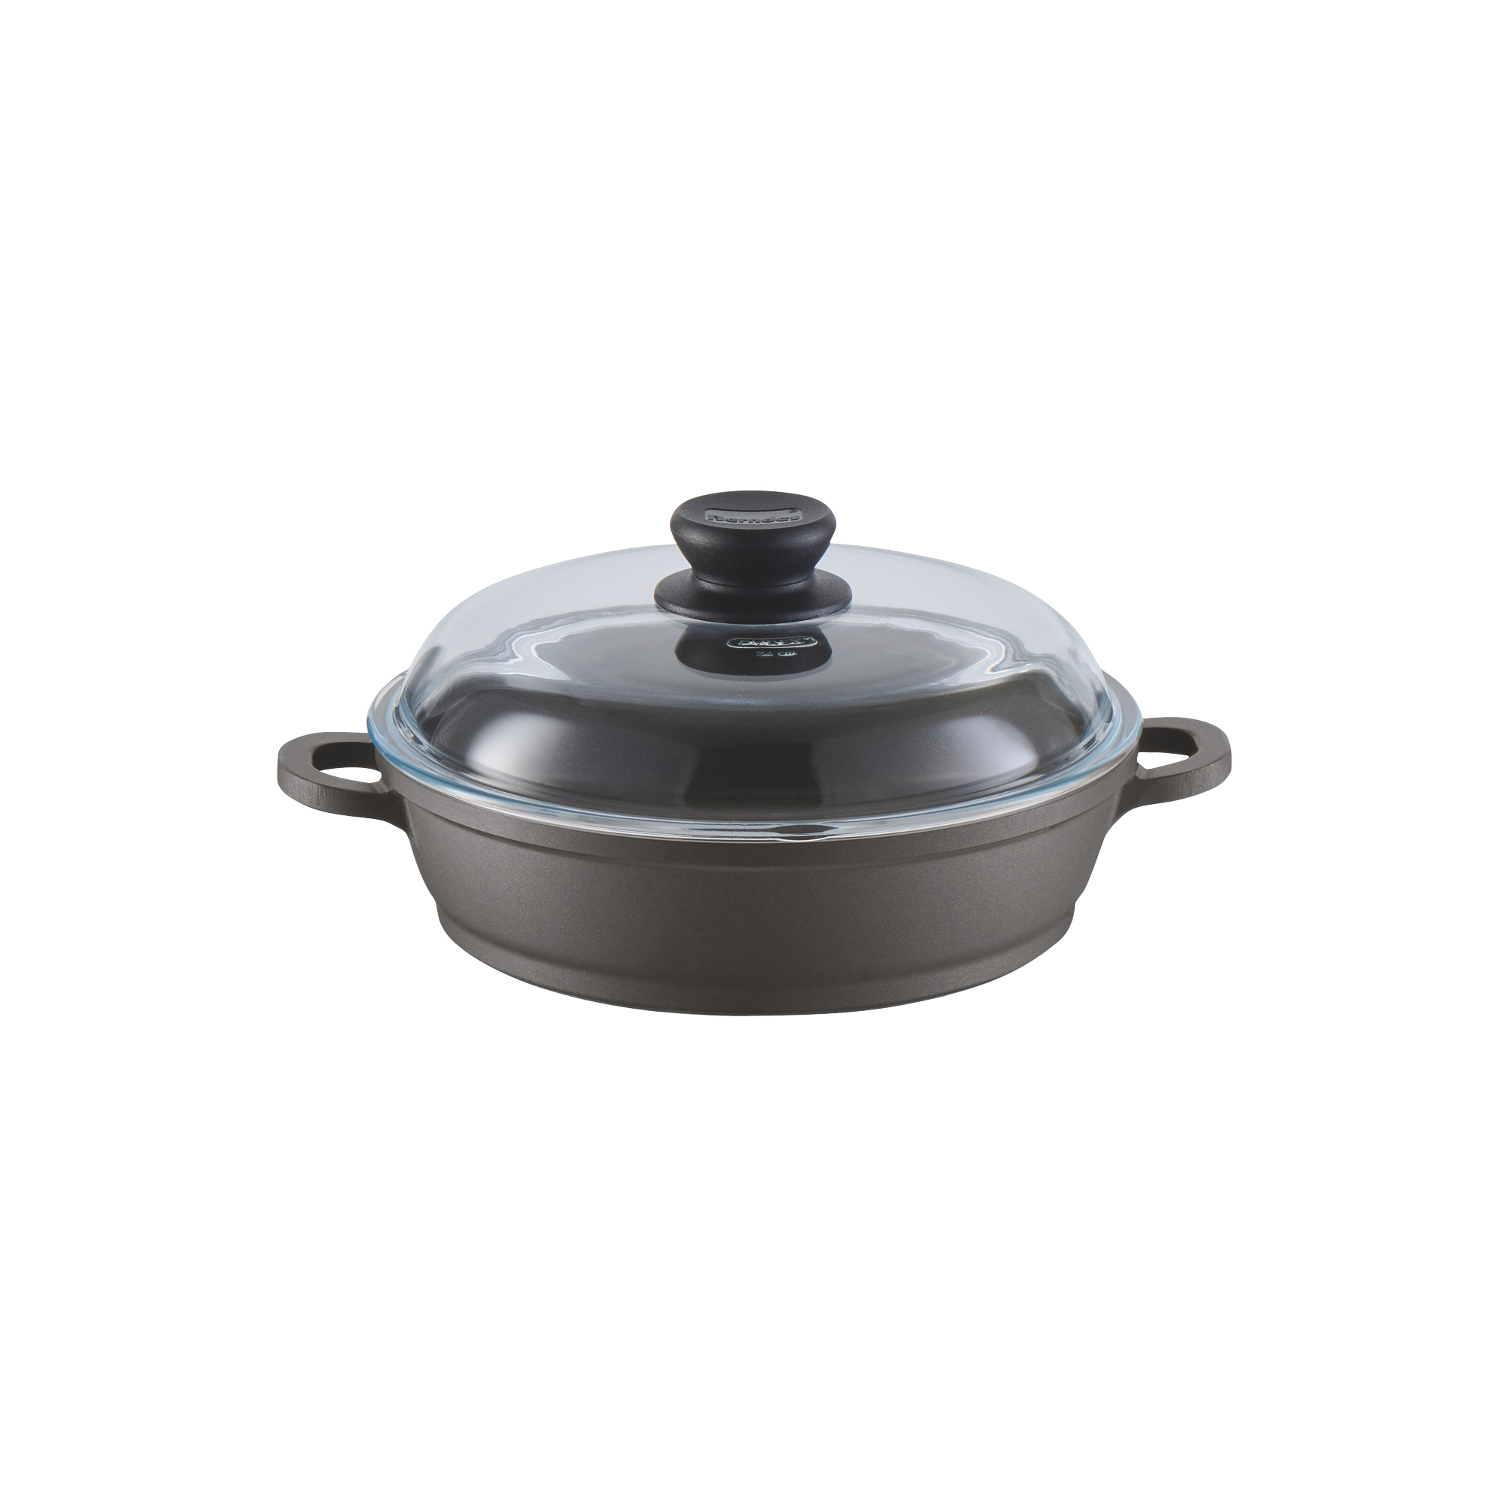 Berndes Tradition Induction Covered 10 Inch Sauté Casserole Pan